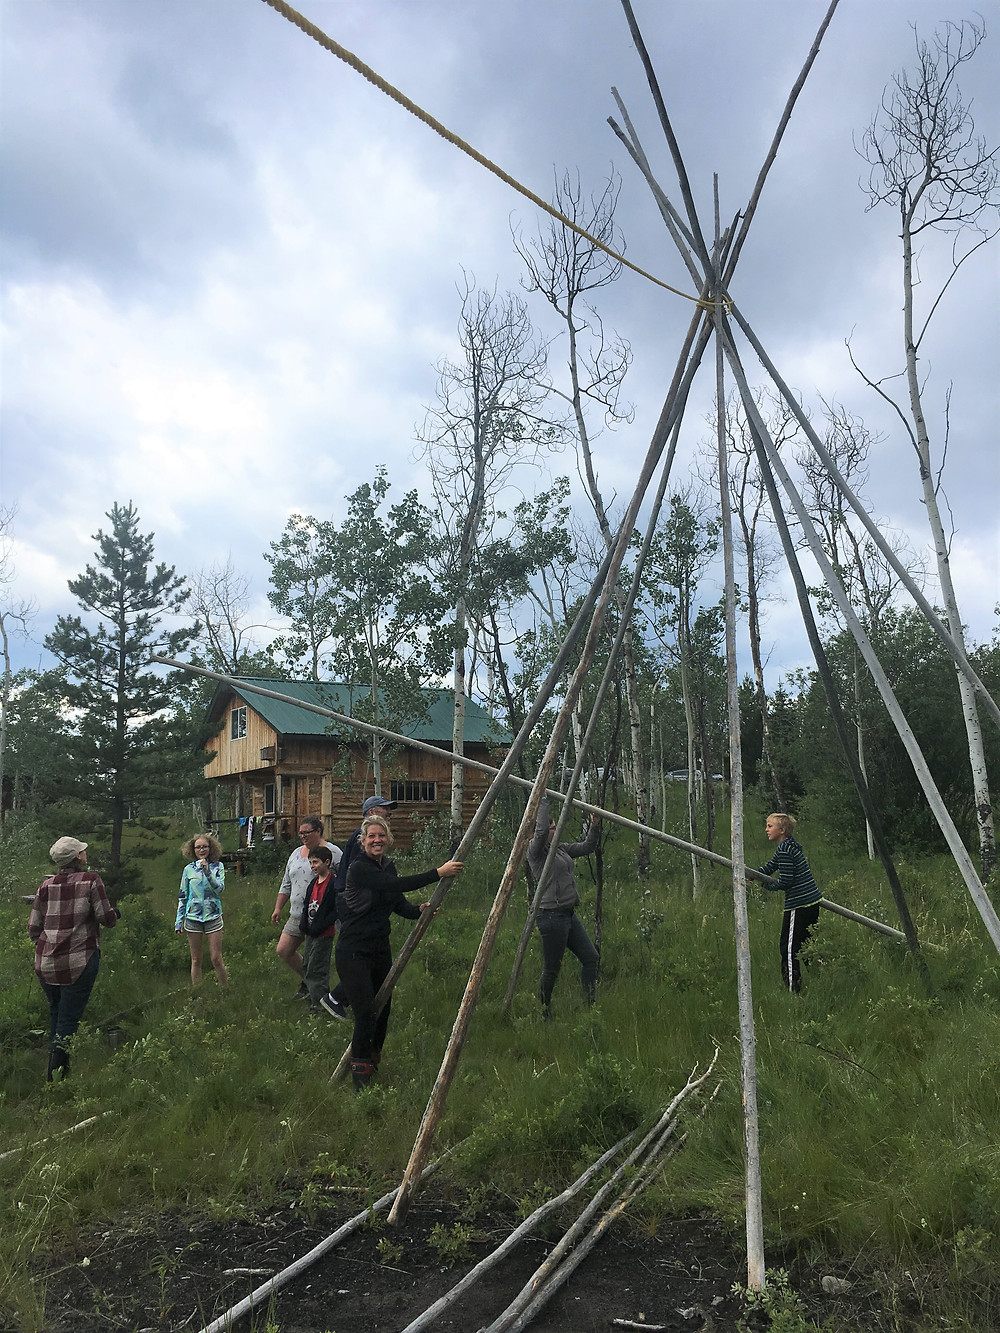 Stage 1 -Teepee Putting up poles